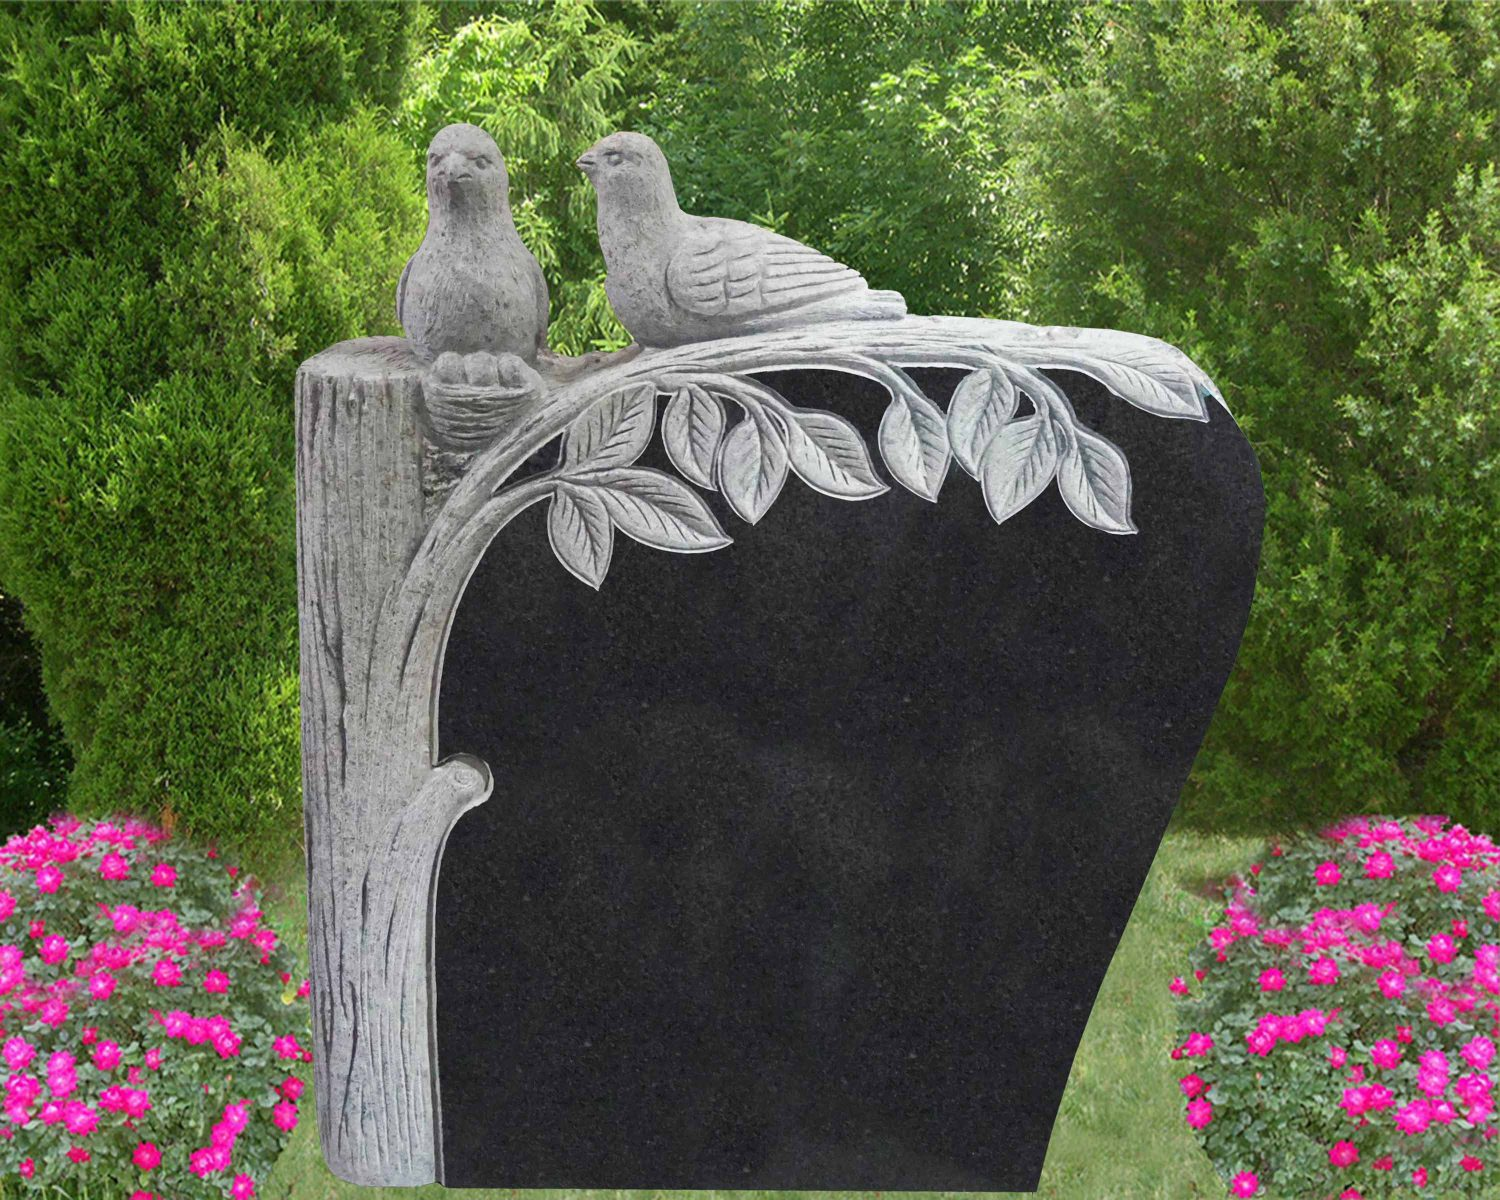 EG-16-364-19 / Jet Black / Sculpted Tree with Birds & Eggs